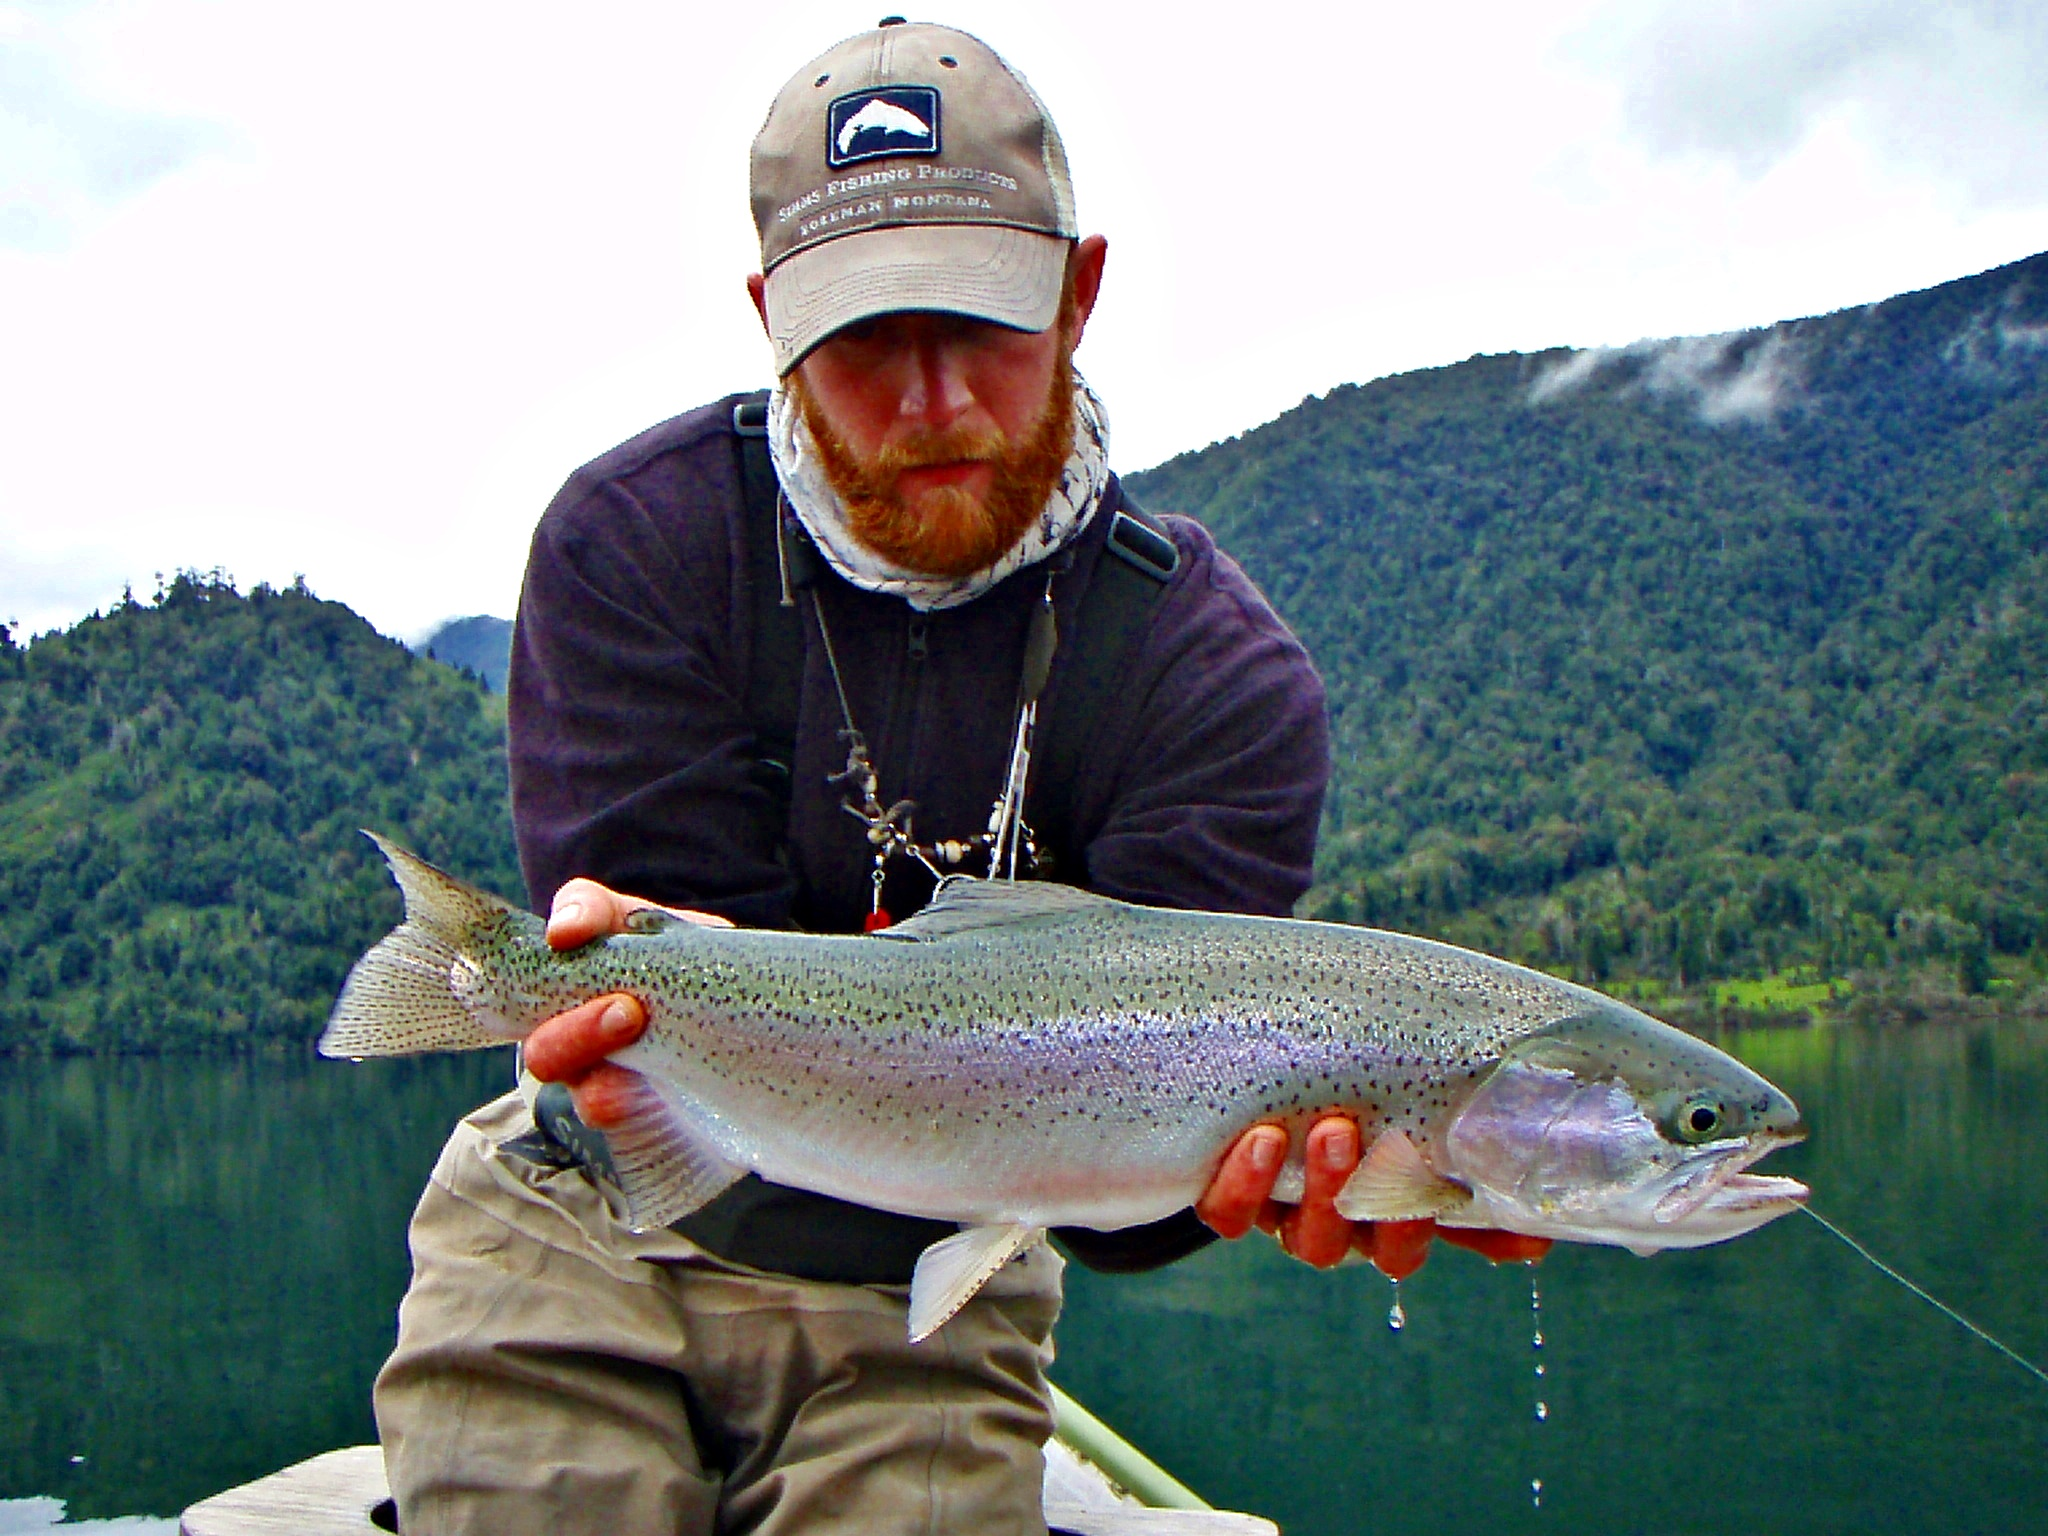 Fly Fishing Chile | Chile Fly Fishing | Fly Fishing Chile Guide | Patagonia Trout Adventures |